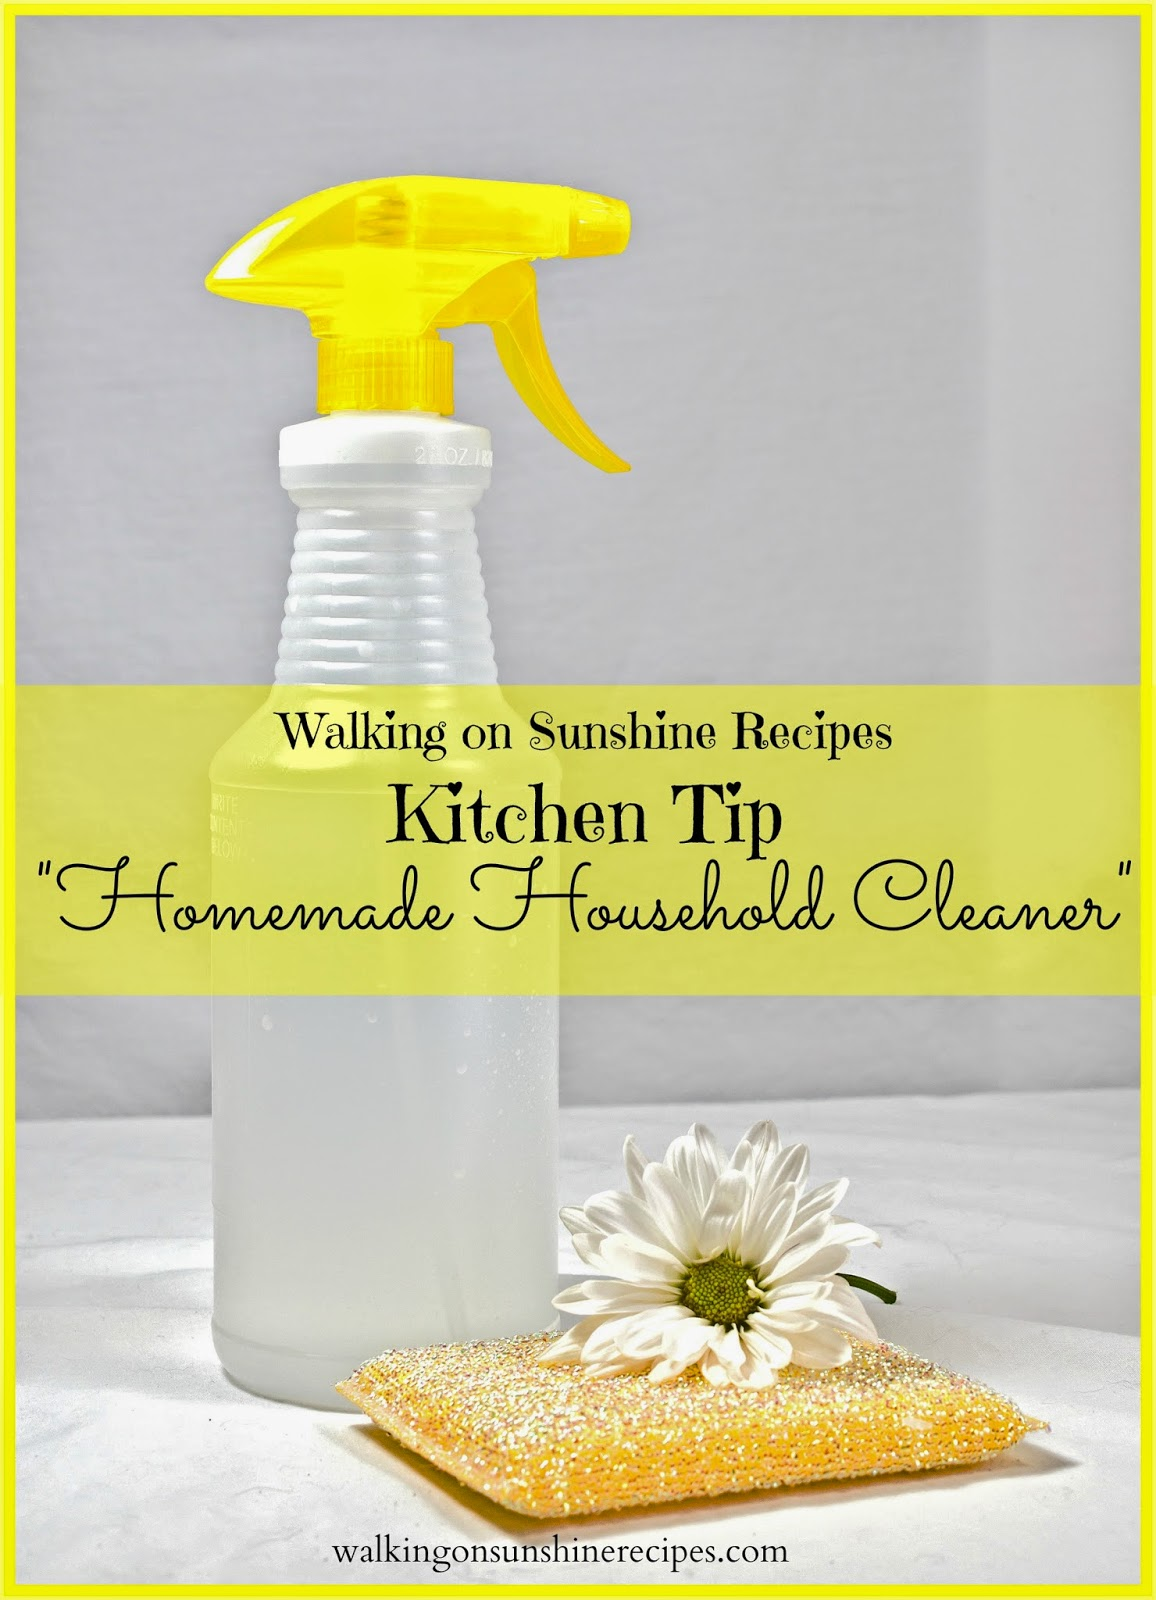 Use this easy homemade household cleaner in your house and you will save money!